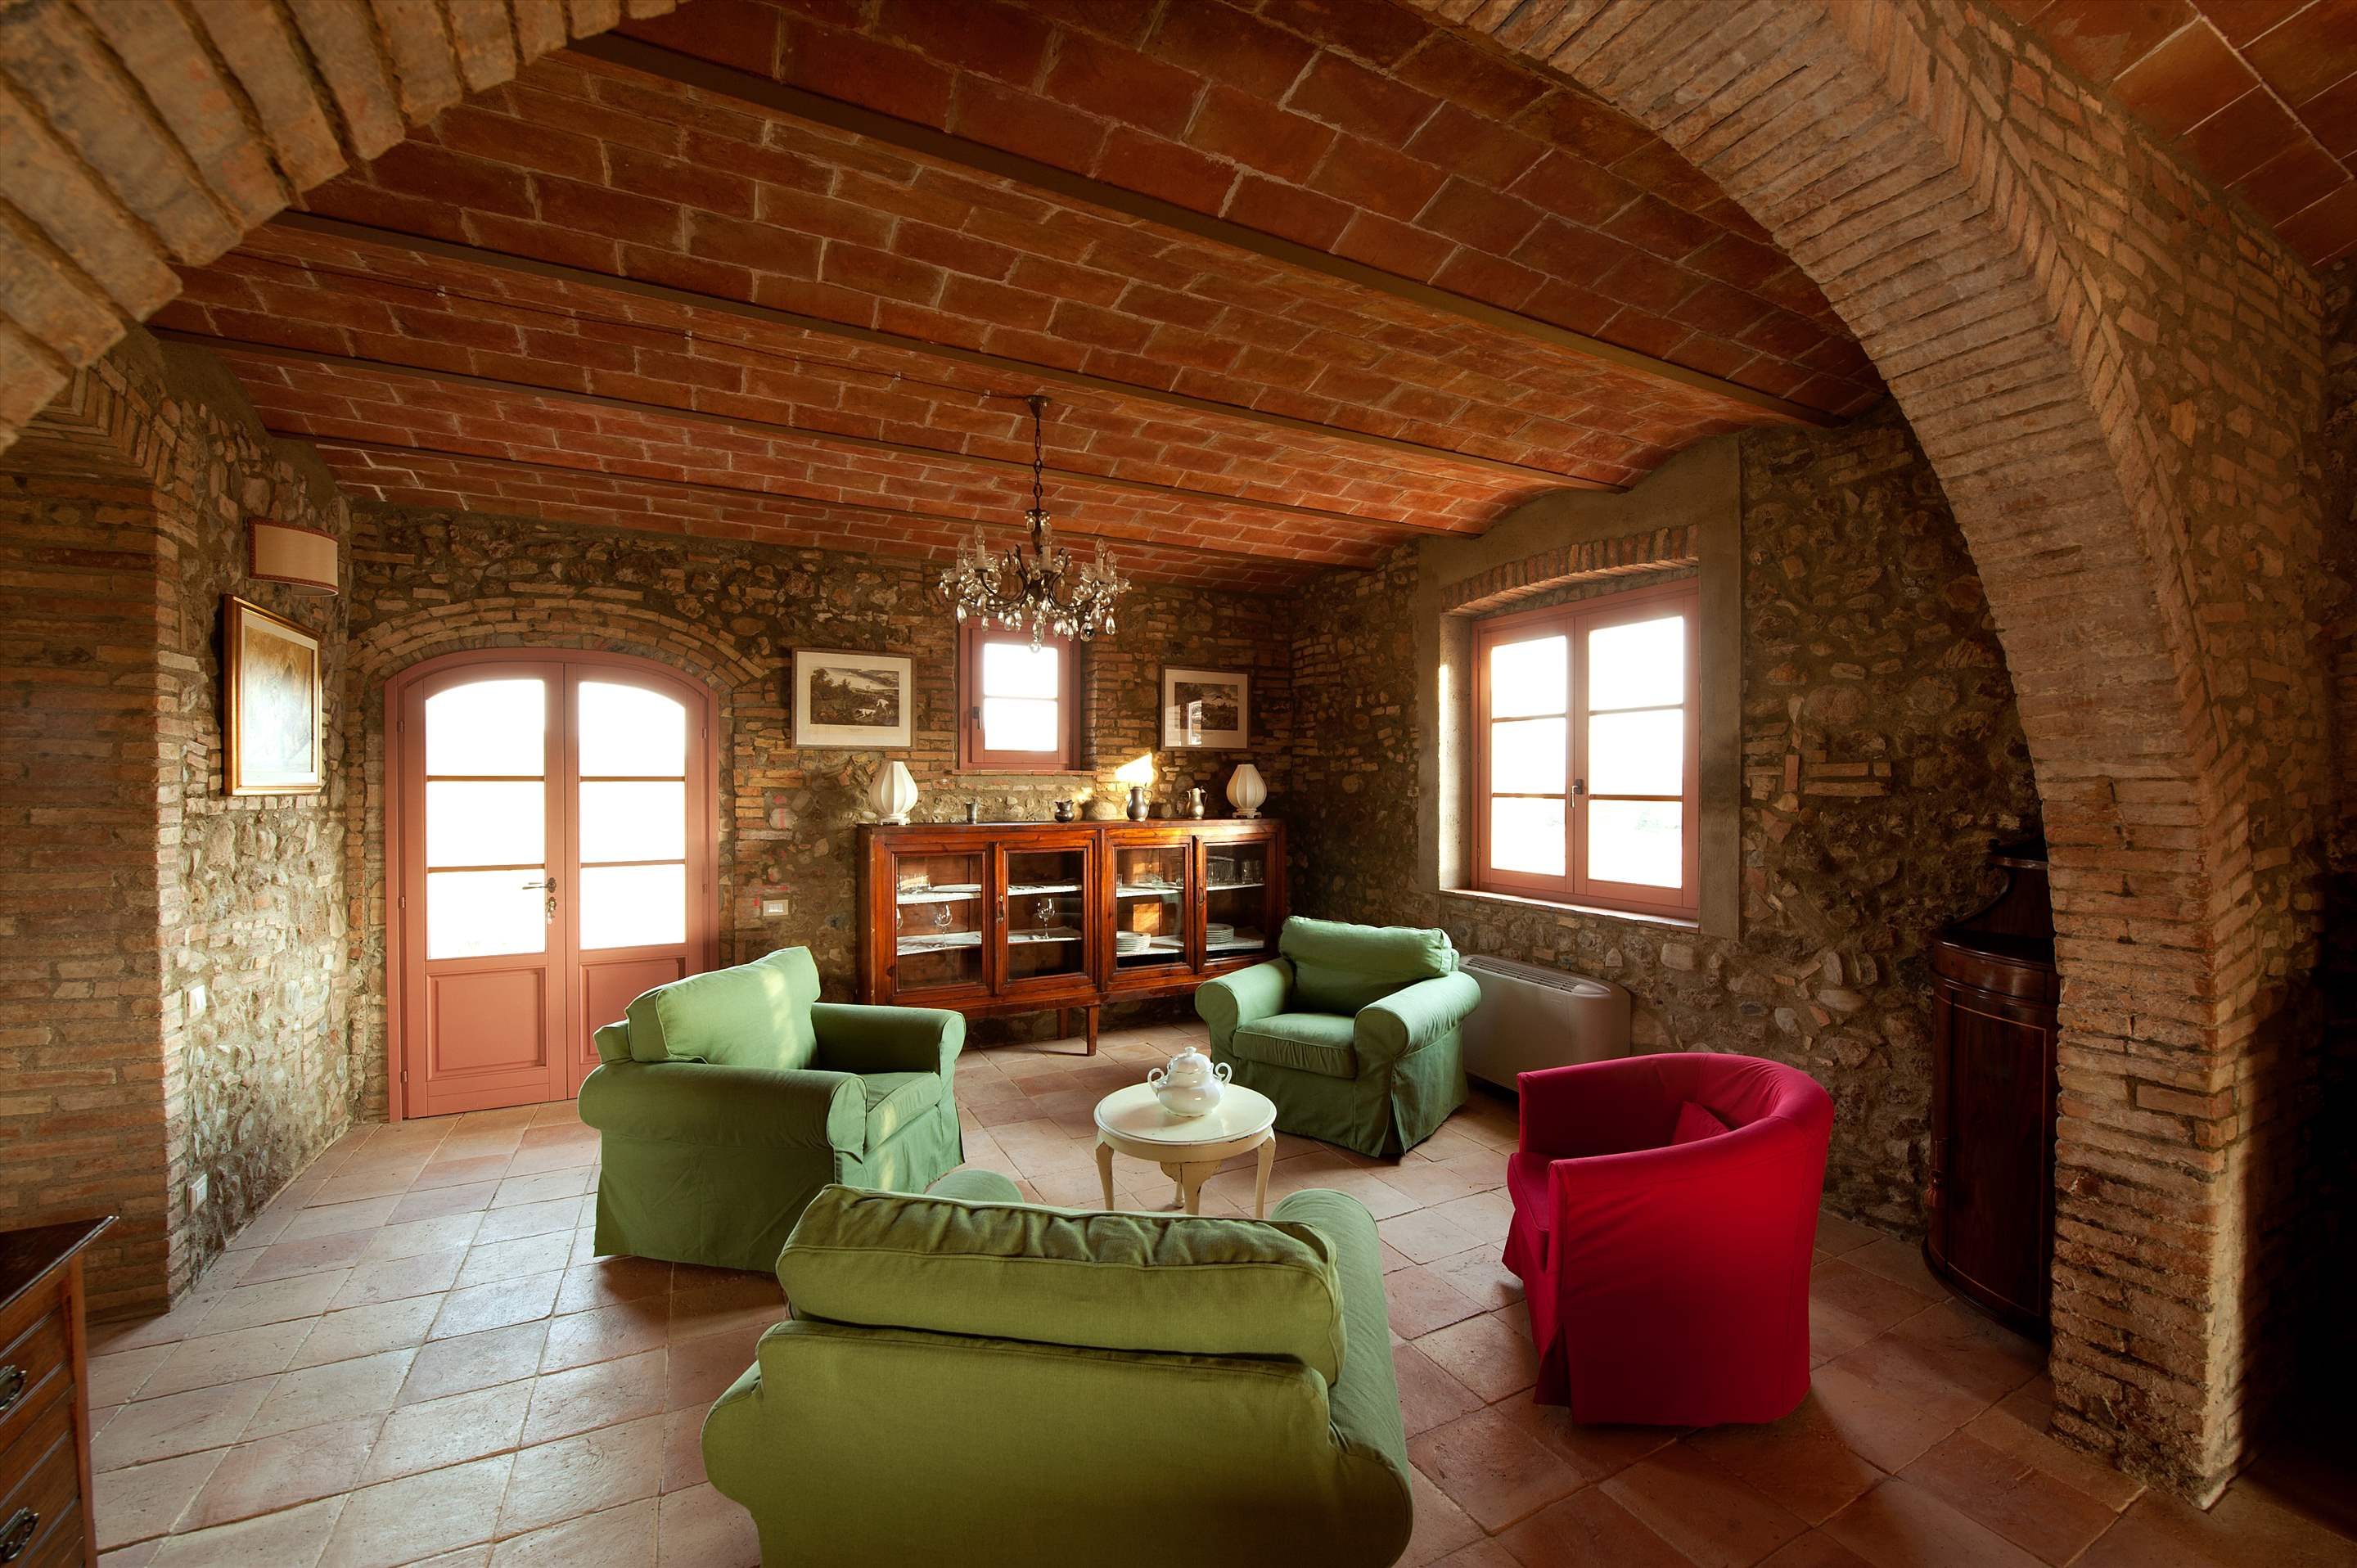 Podere I Gotti, 5 bedroom villa in Tuscany Coast, Tuscany Photo #6